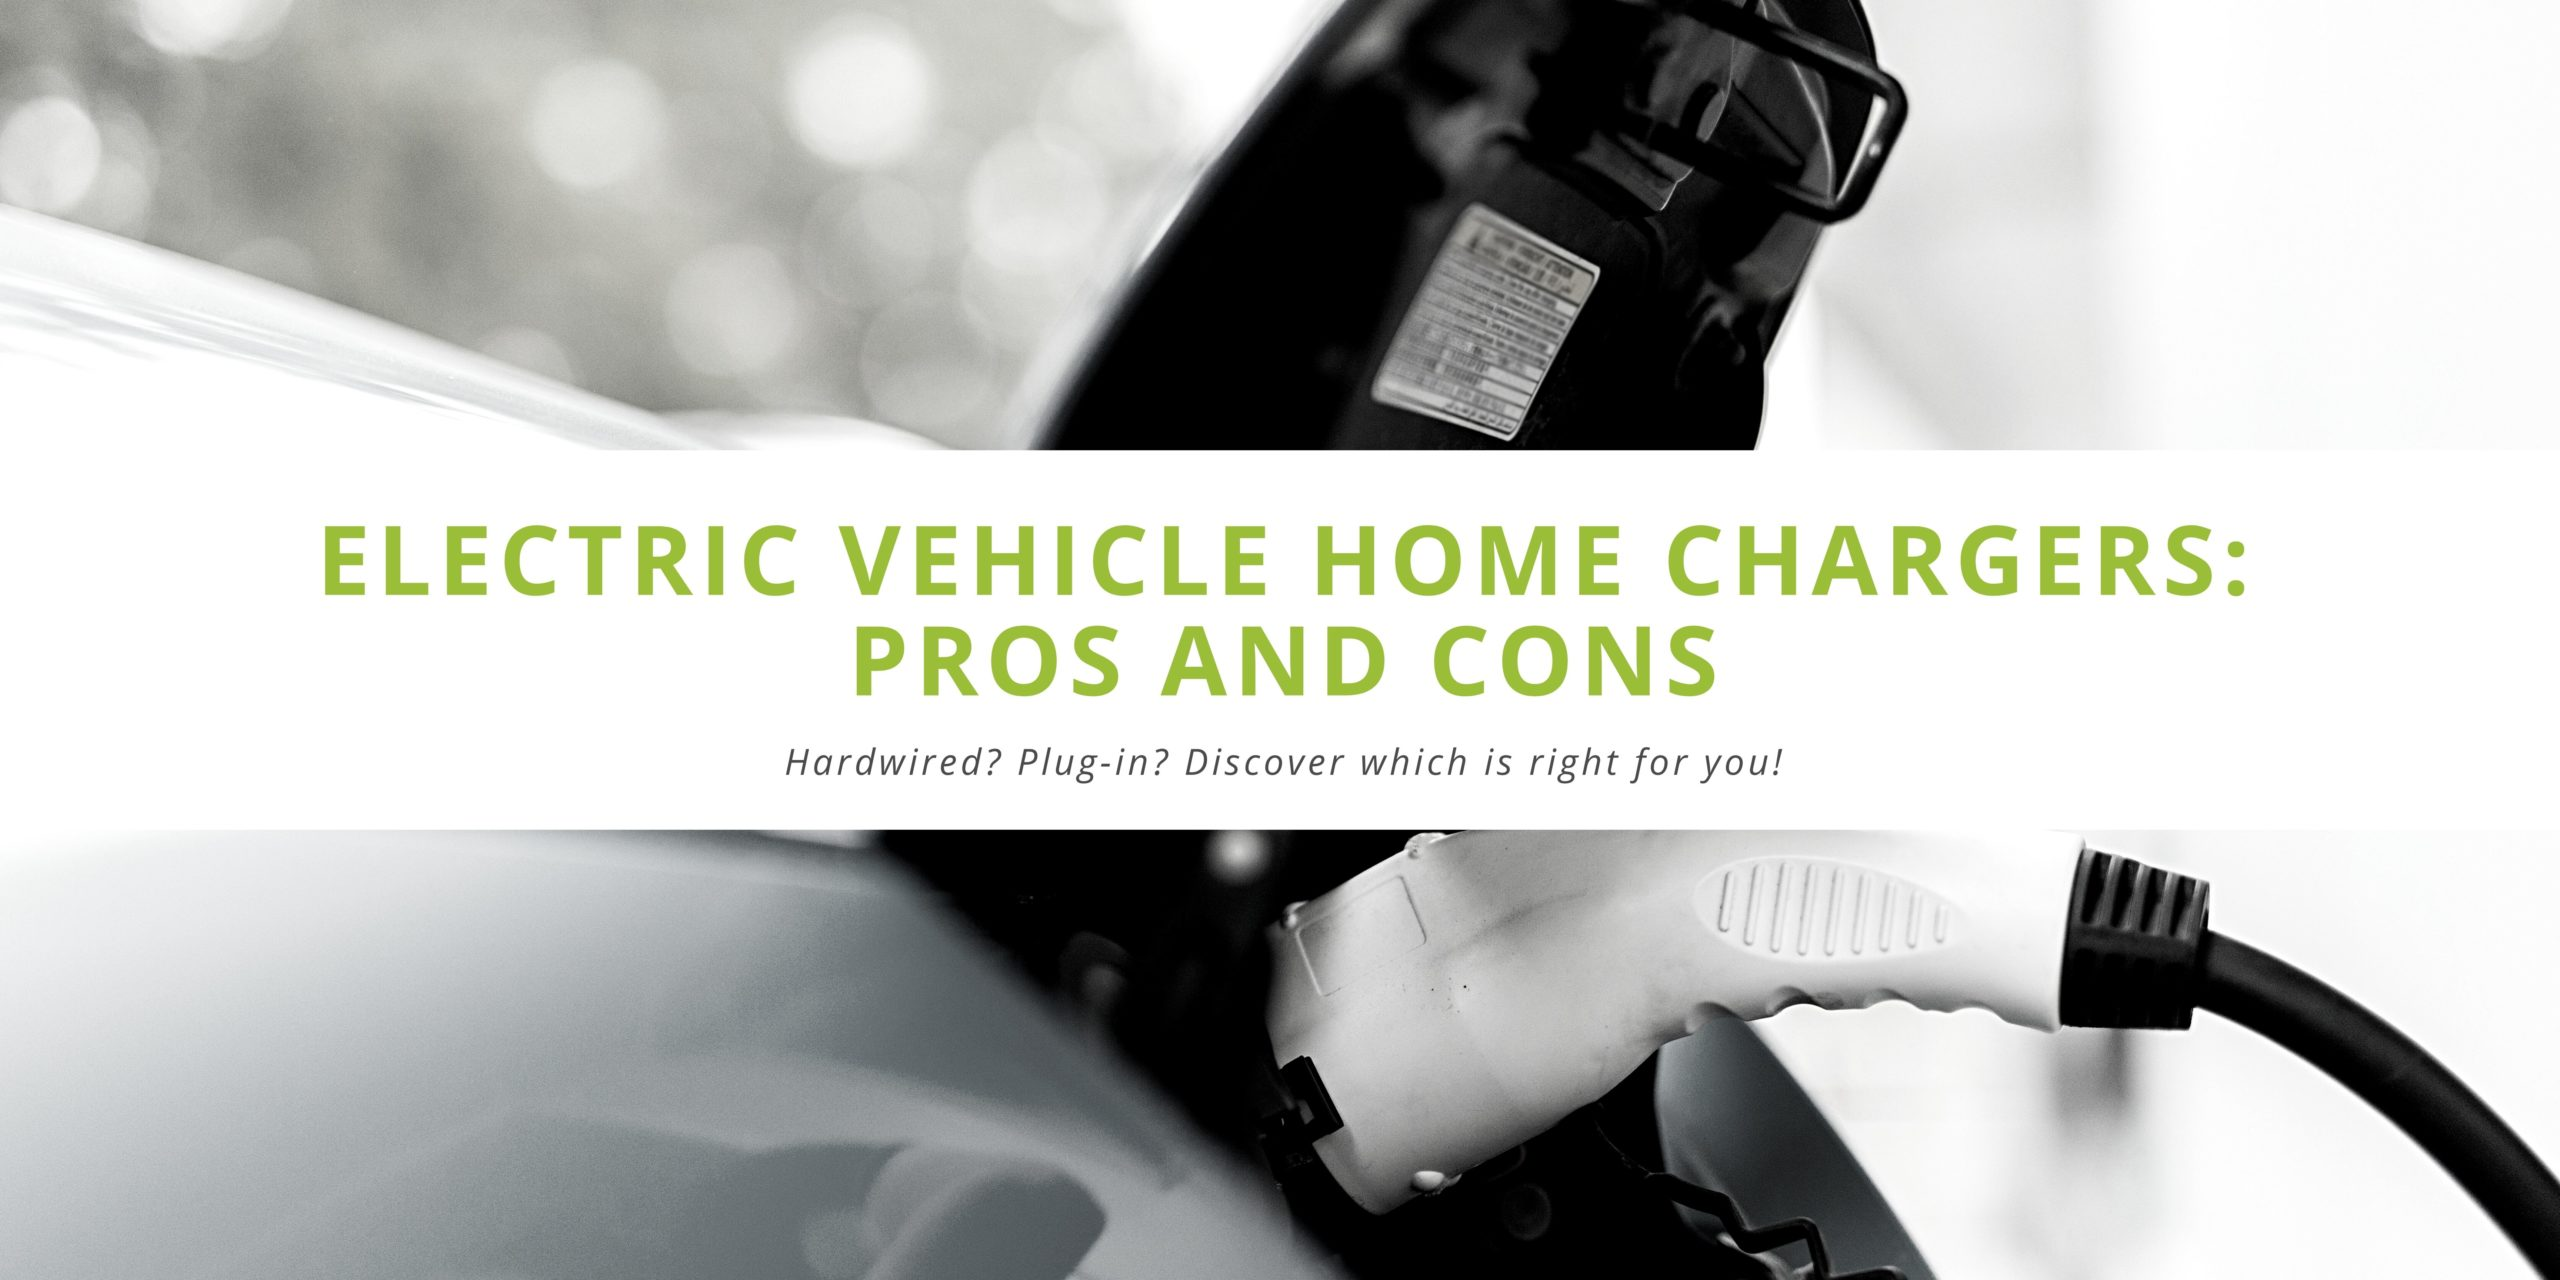 EV Home Charger Pros and Cons